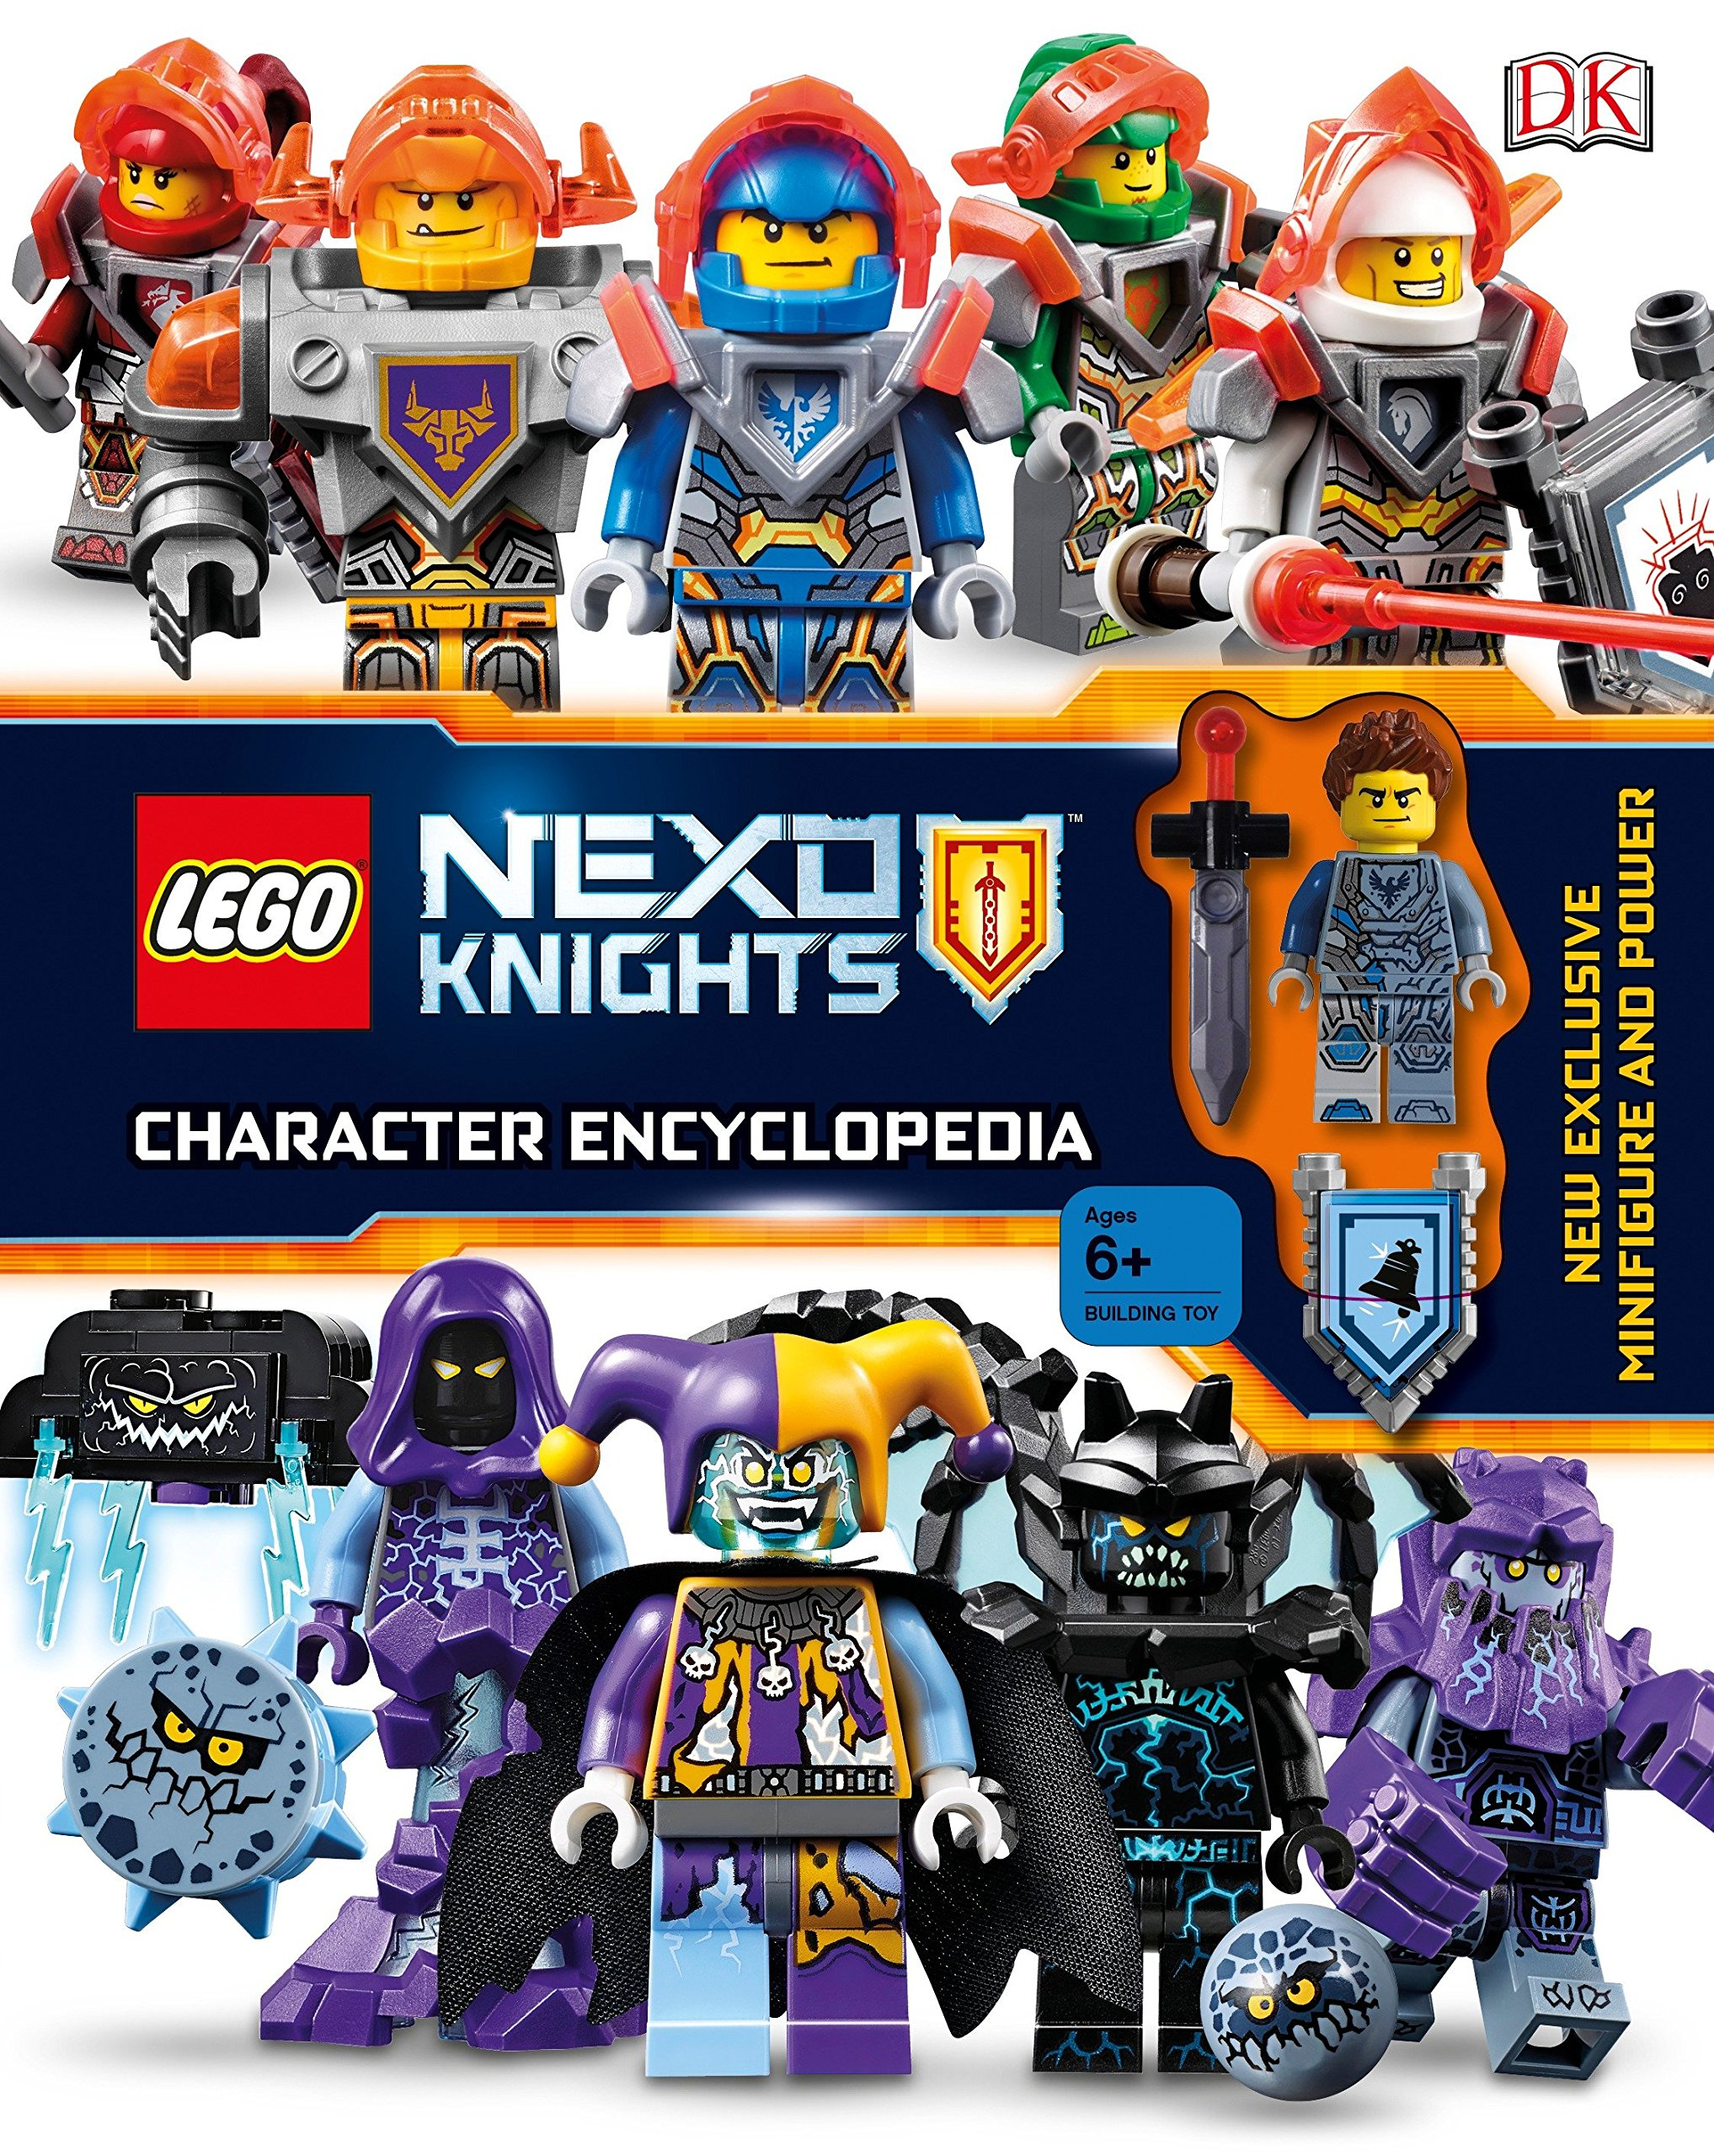 Pick yours Lance Clay Stone Giant Molto Original LEGO Nexo Knights minifigure